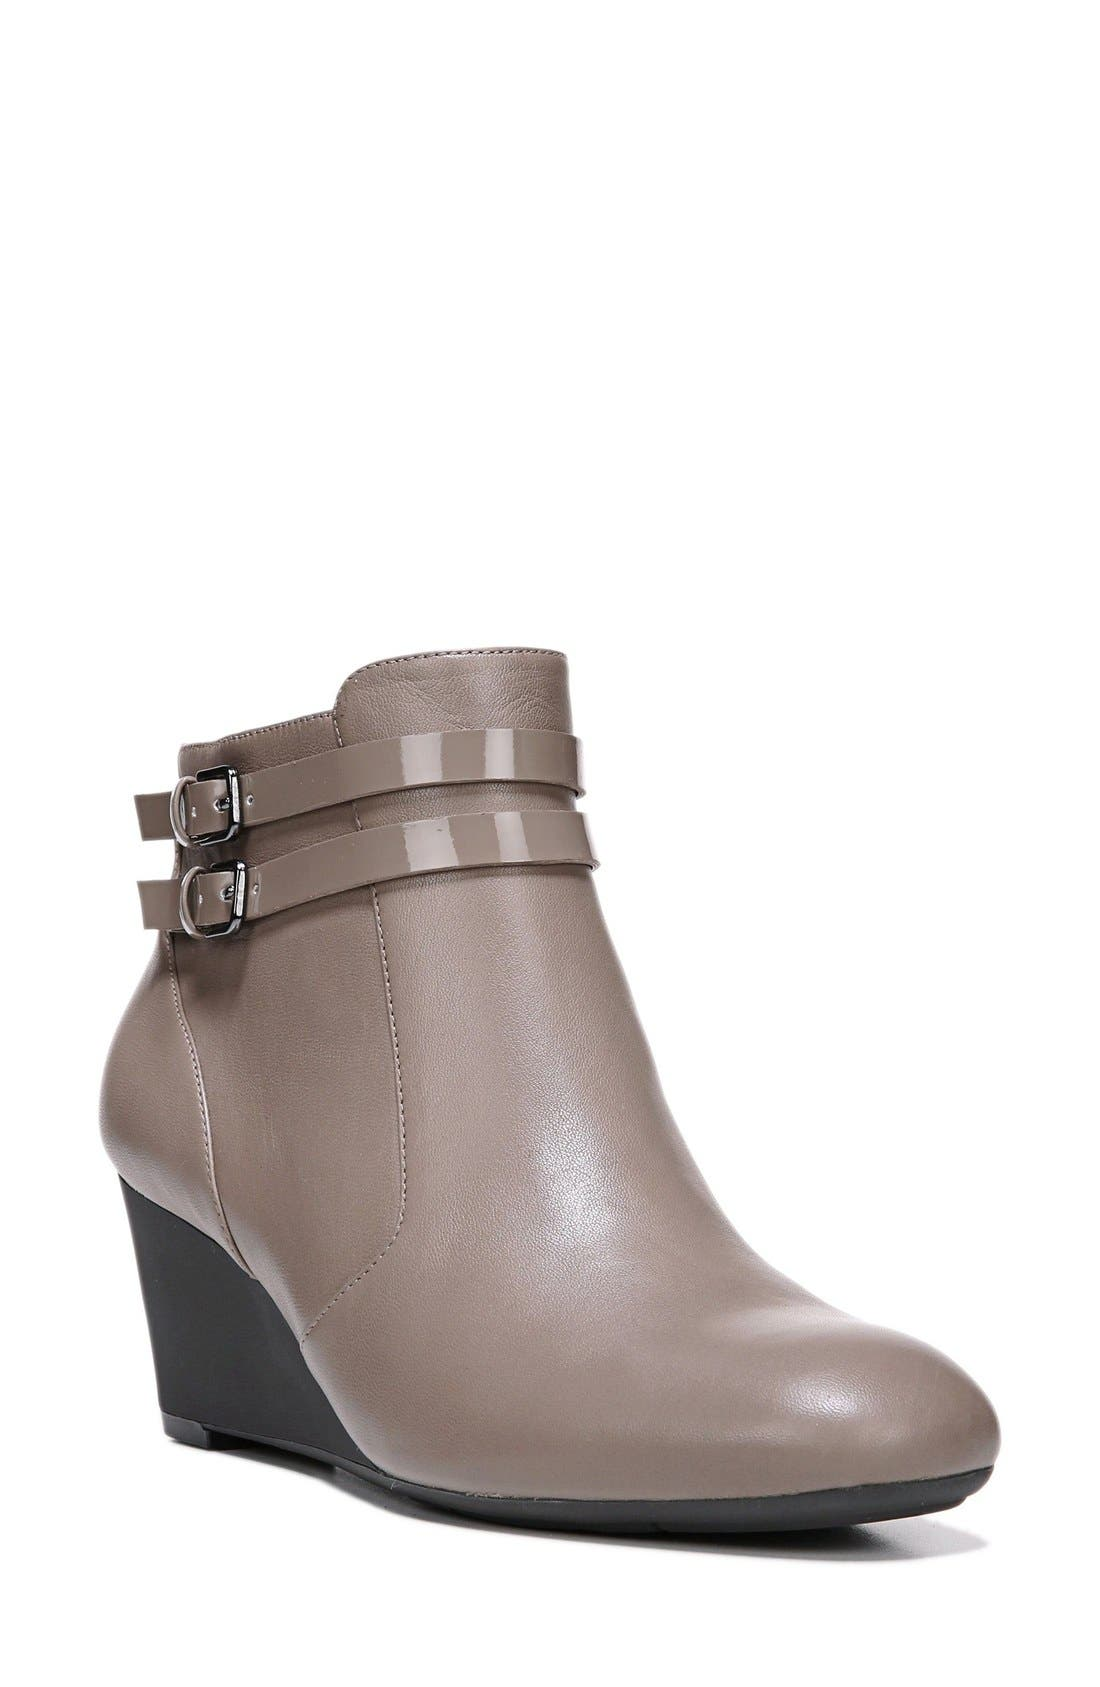 Alternate Image 1 Selected - Naturalizer 'Nikole' Wedge Bootie (Women)